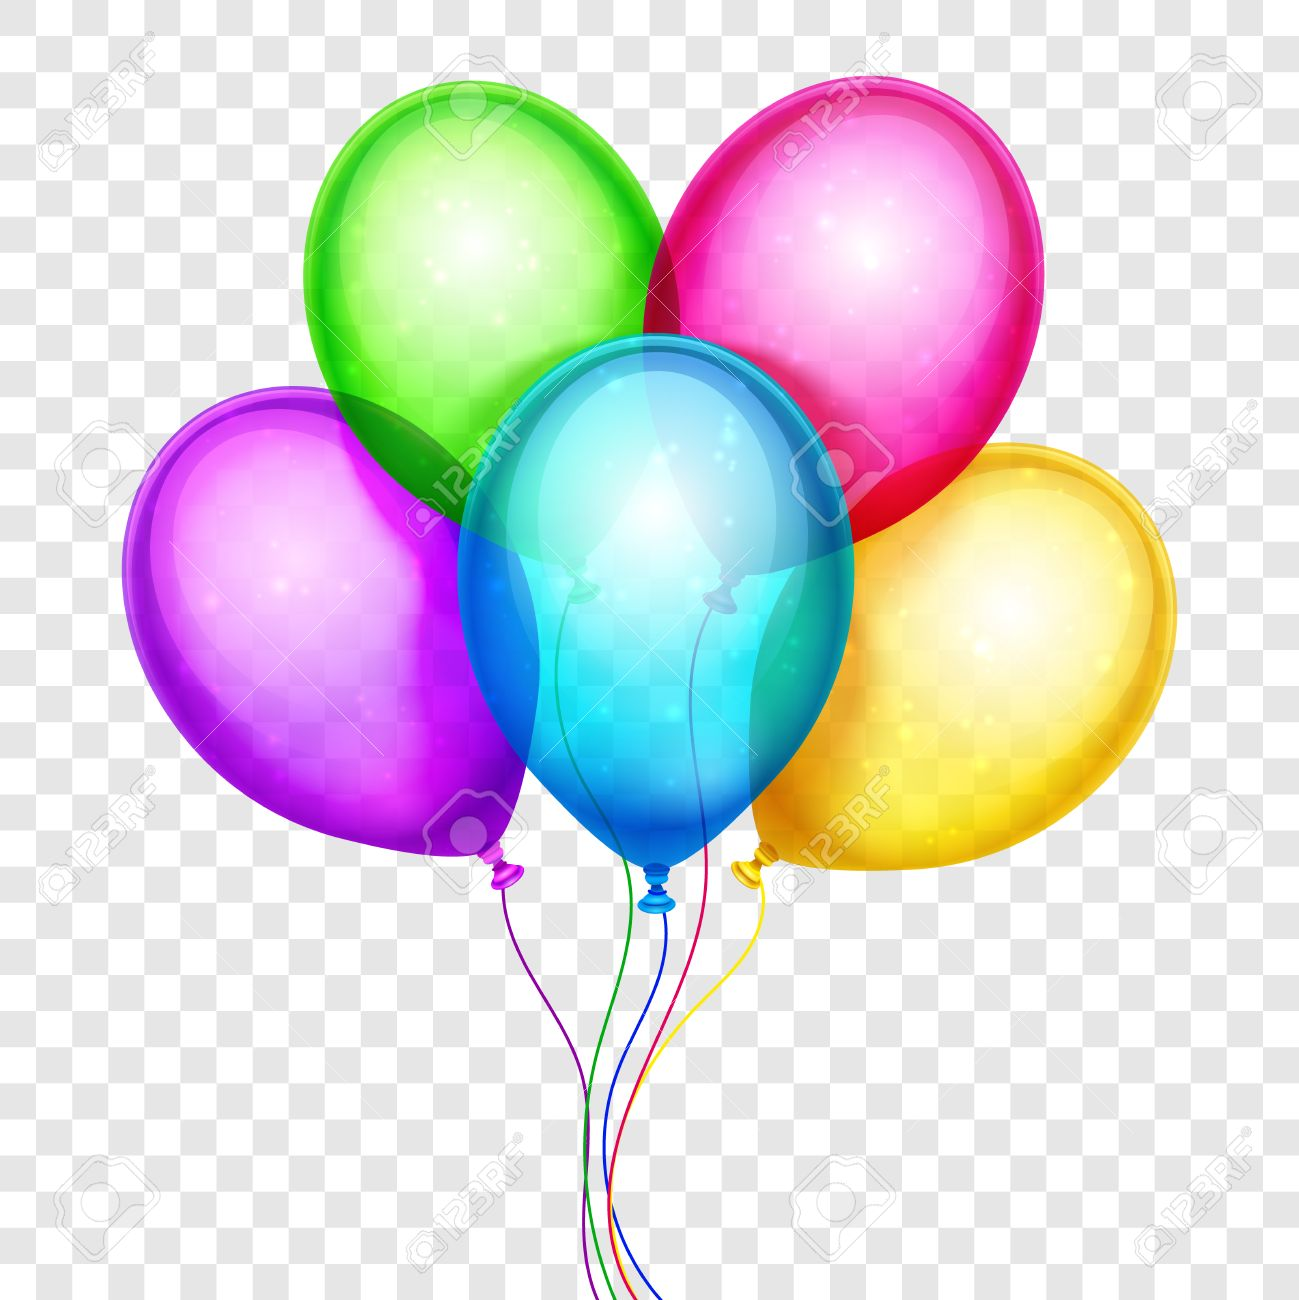 Birthday Balloons Clipart Transparent Background.